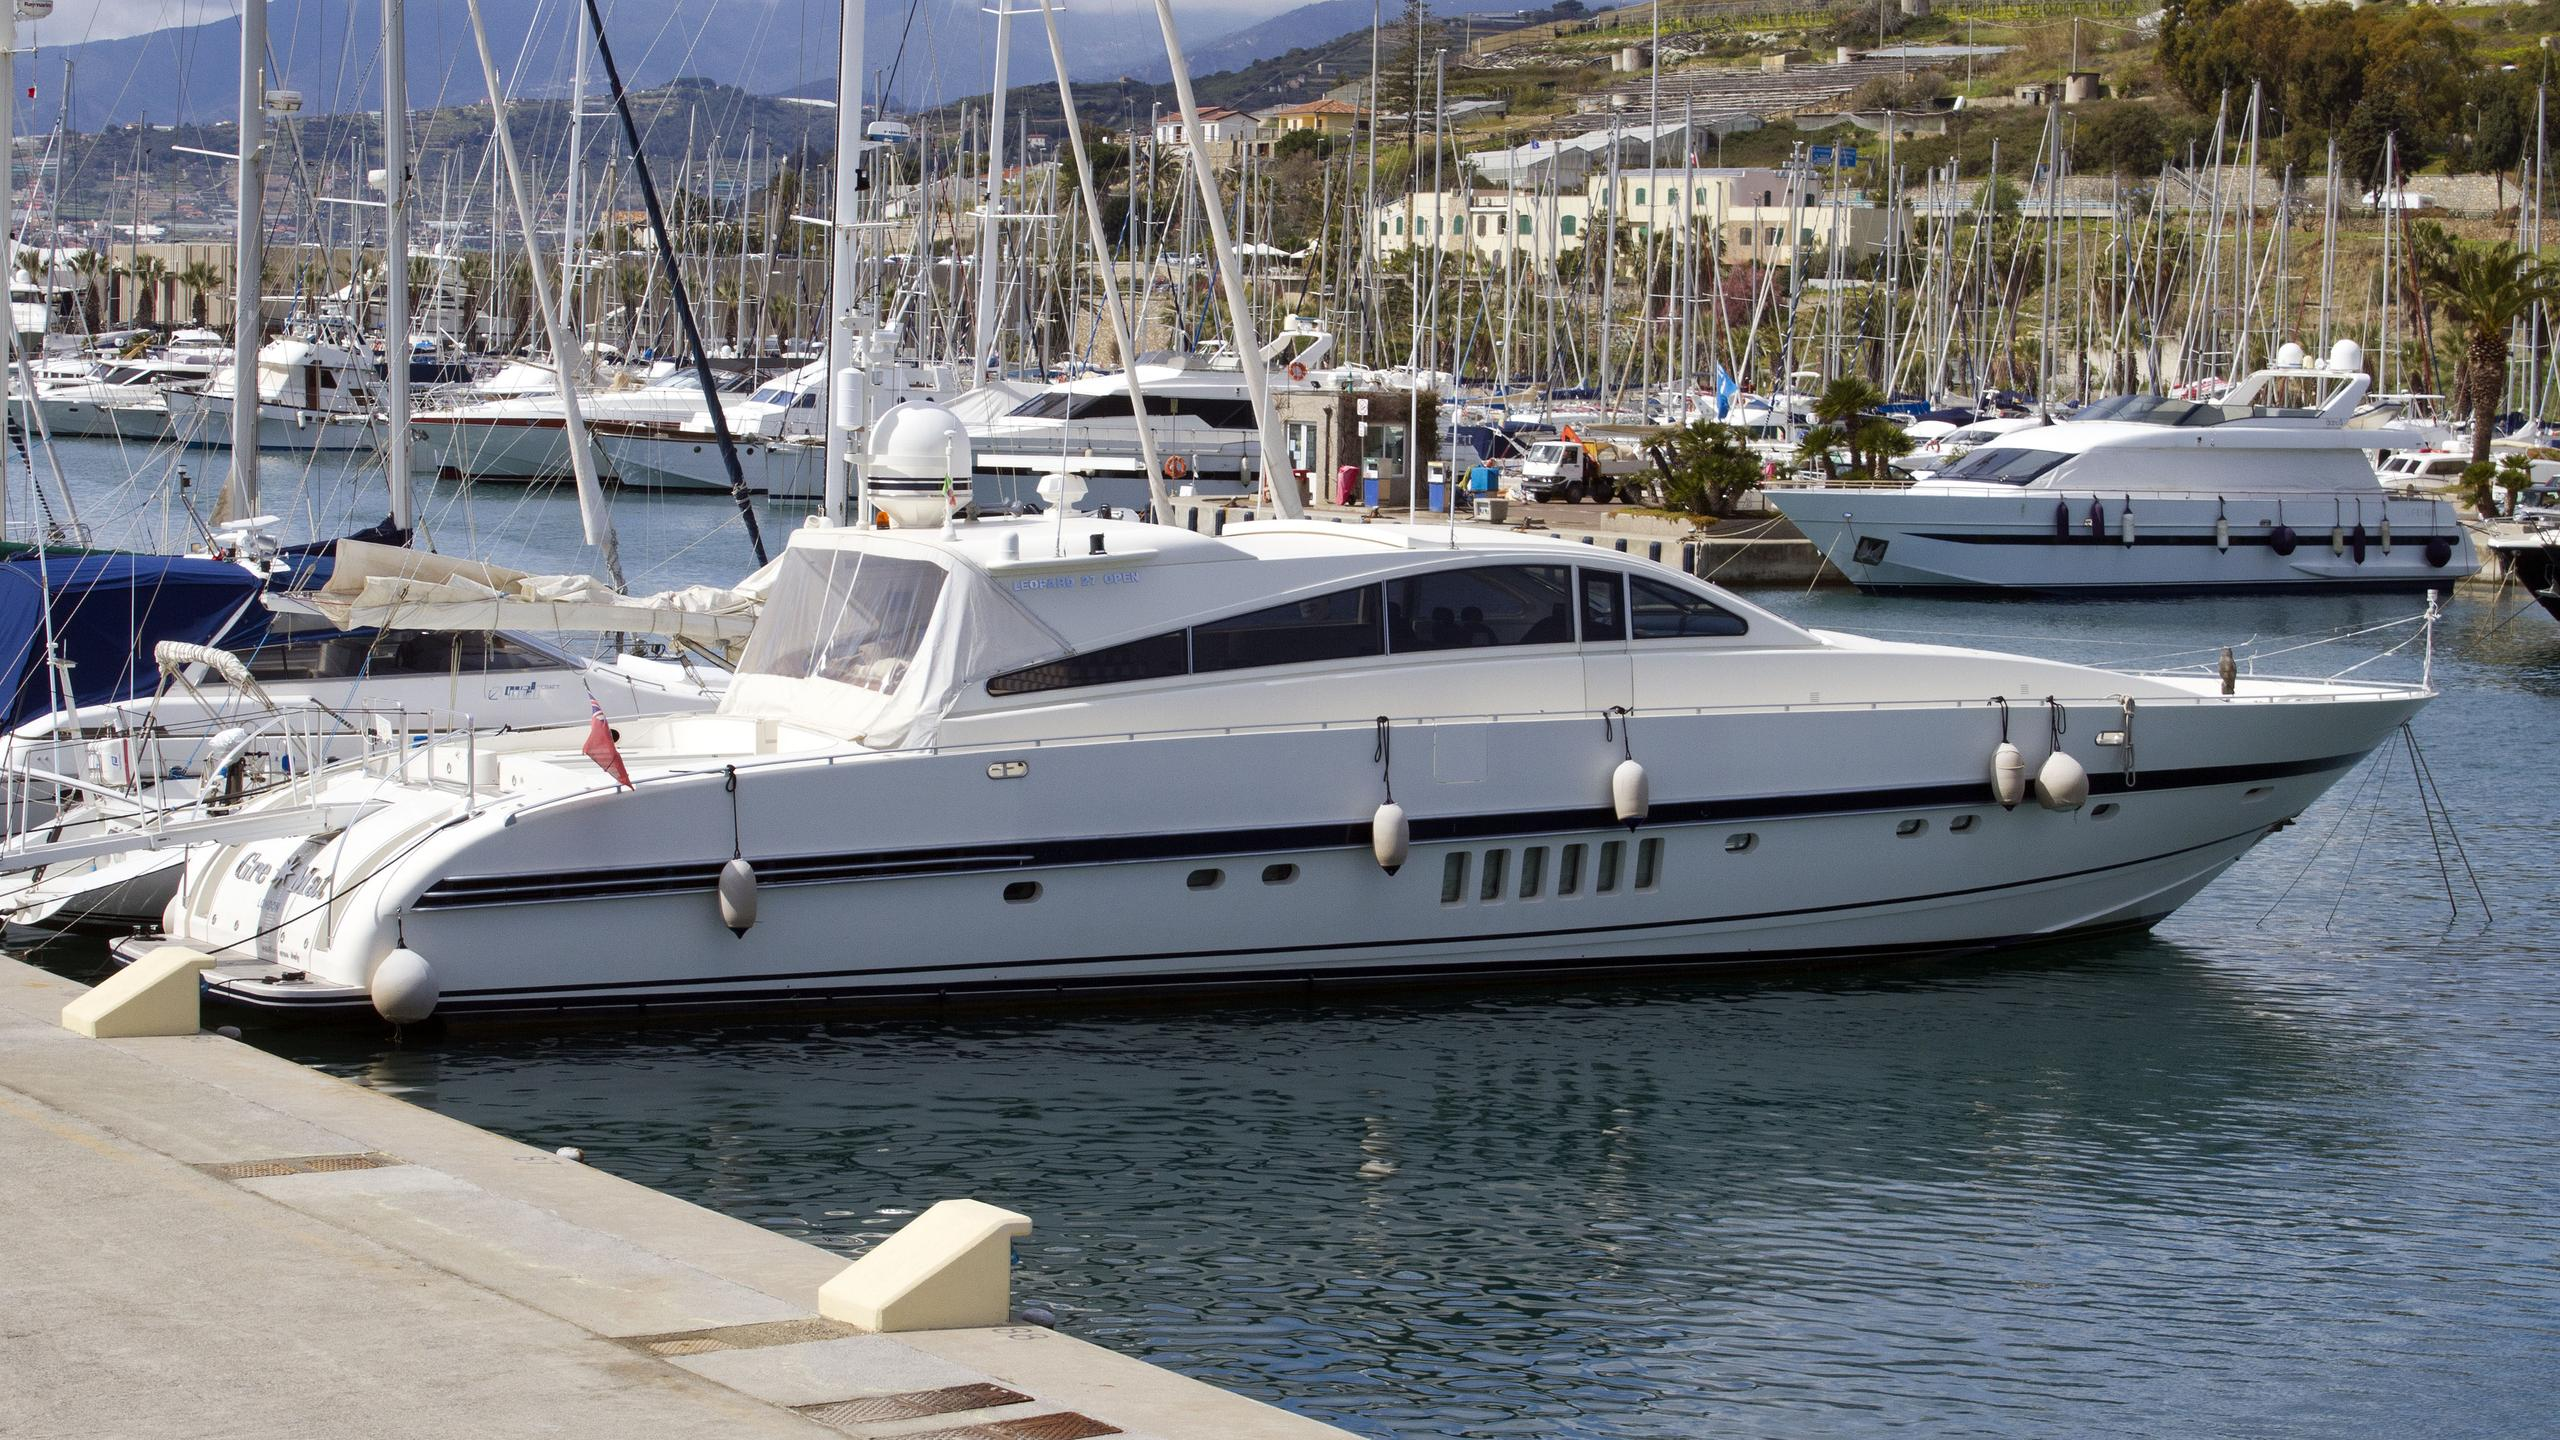 gremat-motor-yacht-arno-leopard-27-sport-1999-27m-profile